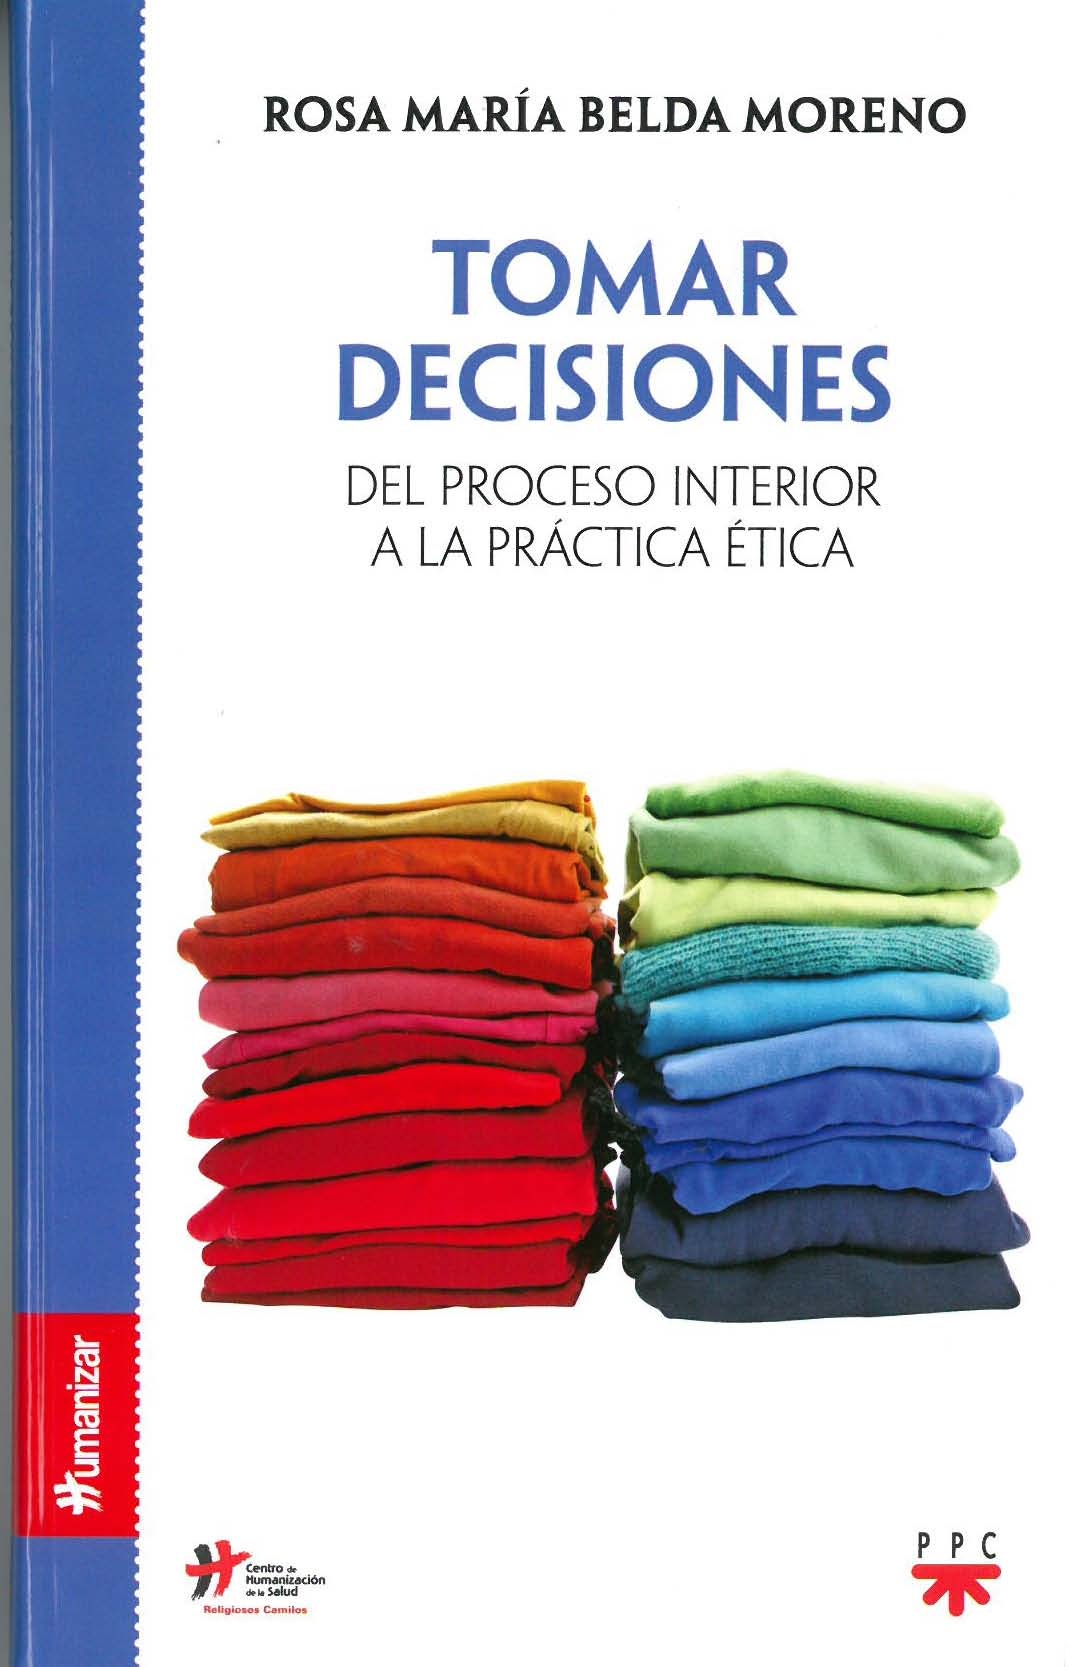 uploads/tx_sfbooks/Tomar_Decisiones.jpg